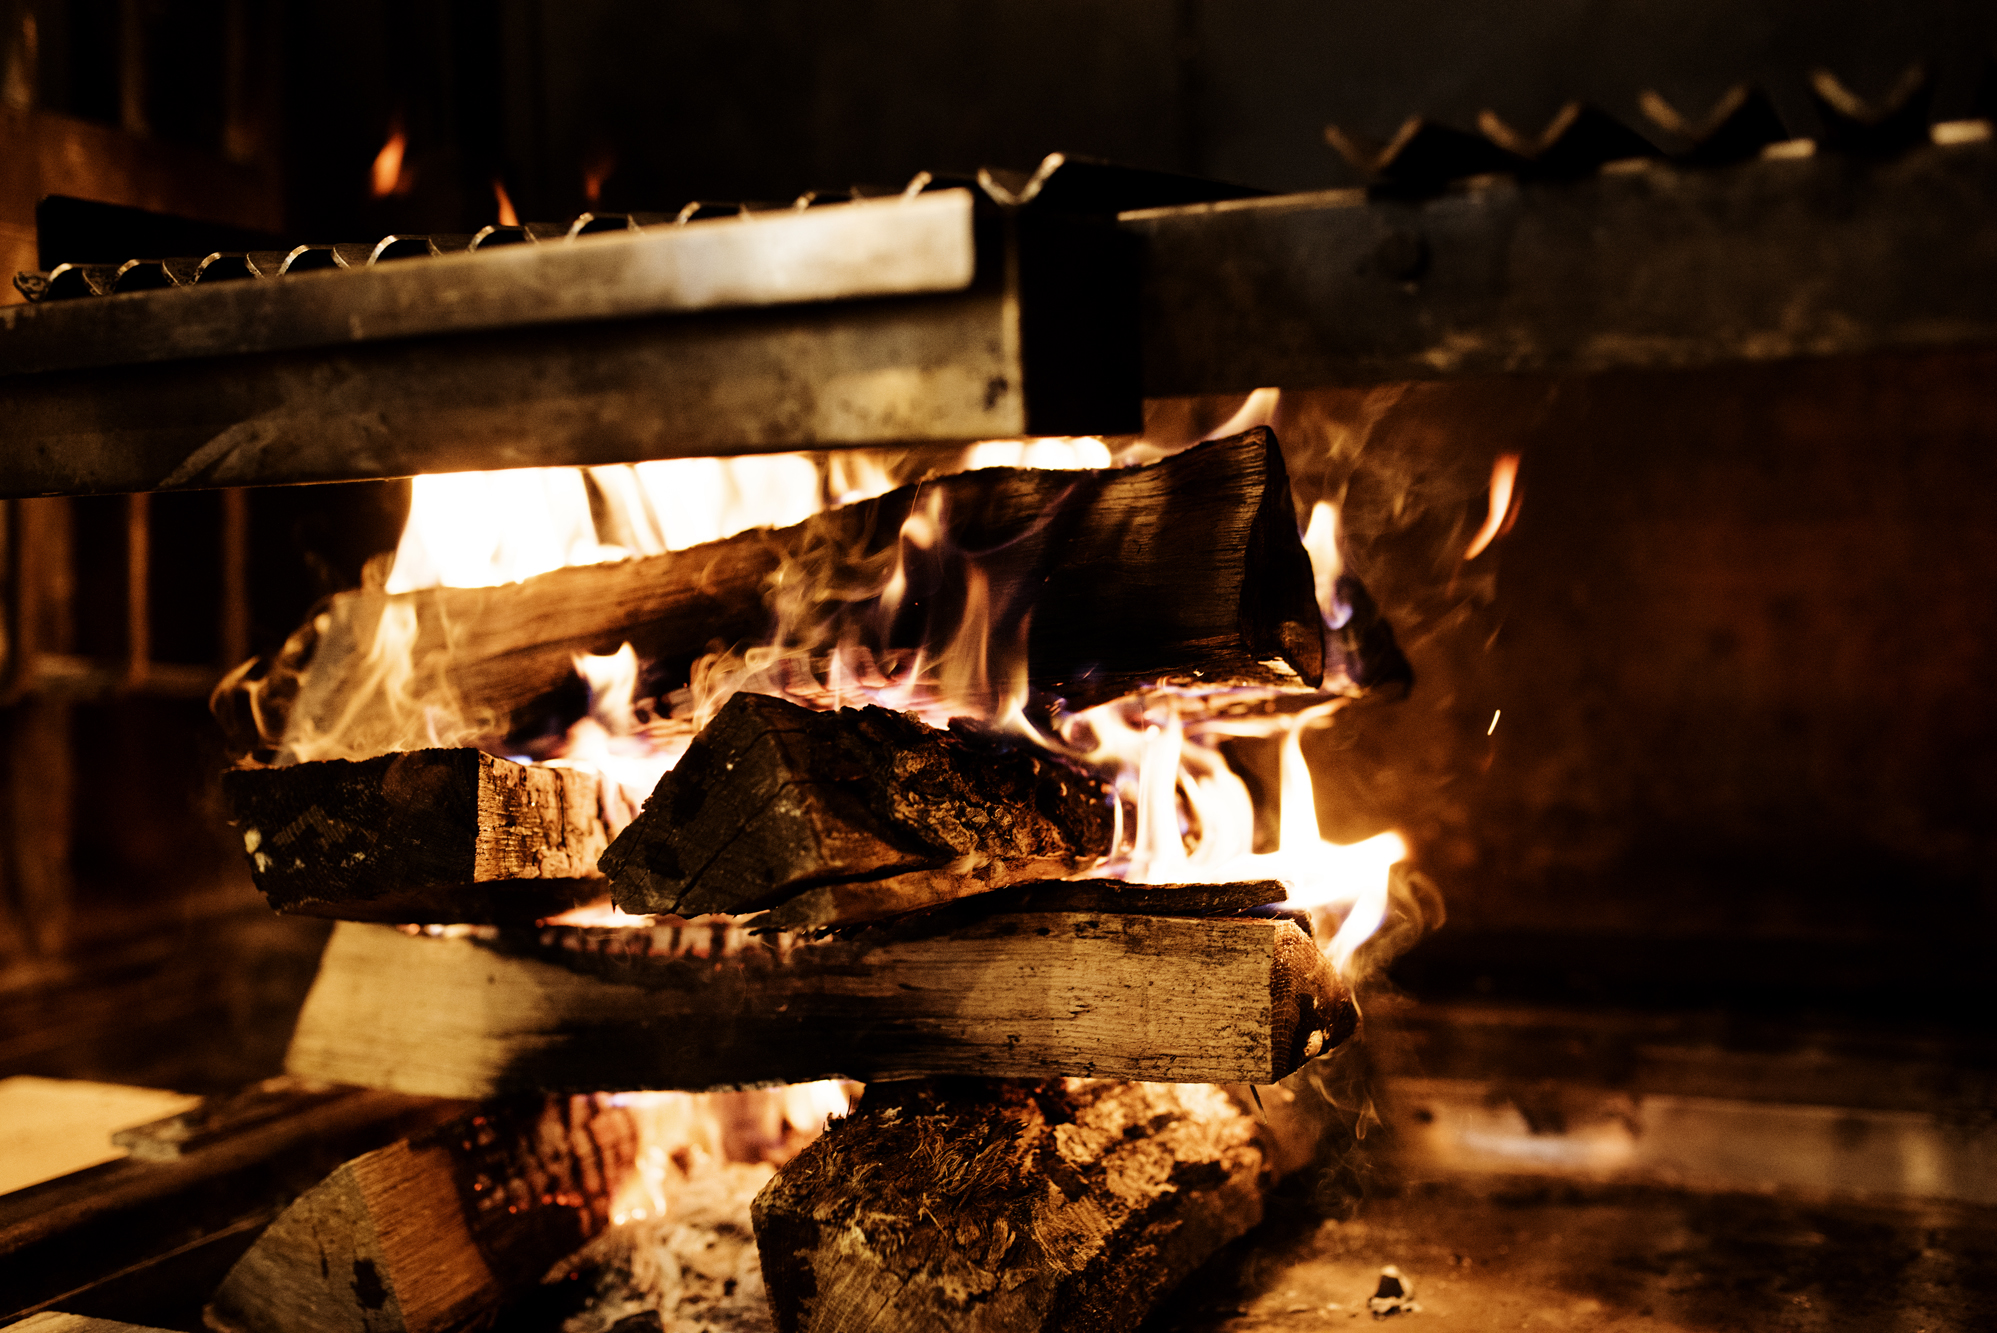 Wood Fire | Martina | The Restaurant Project